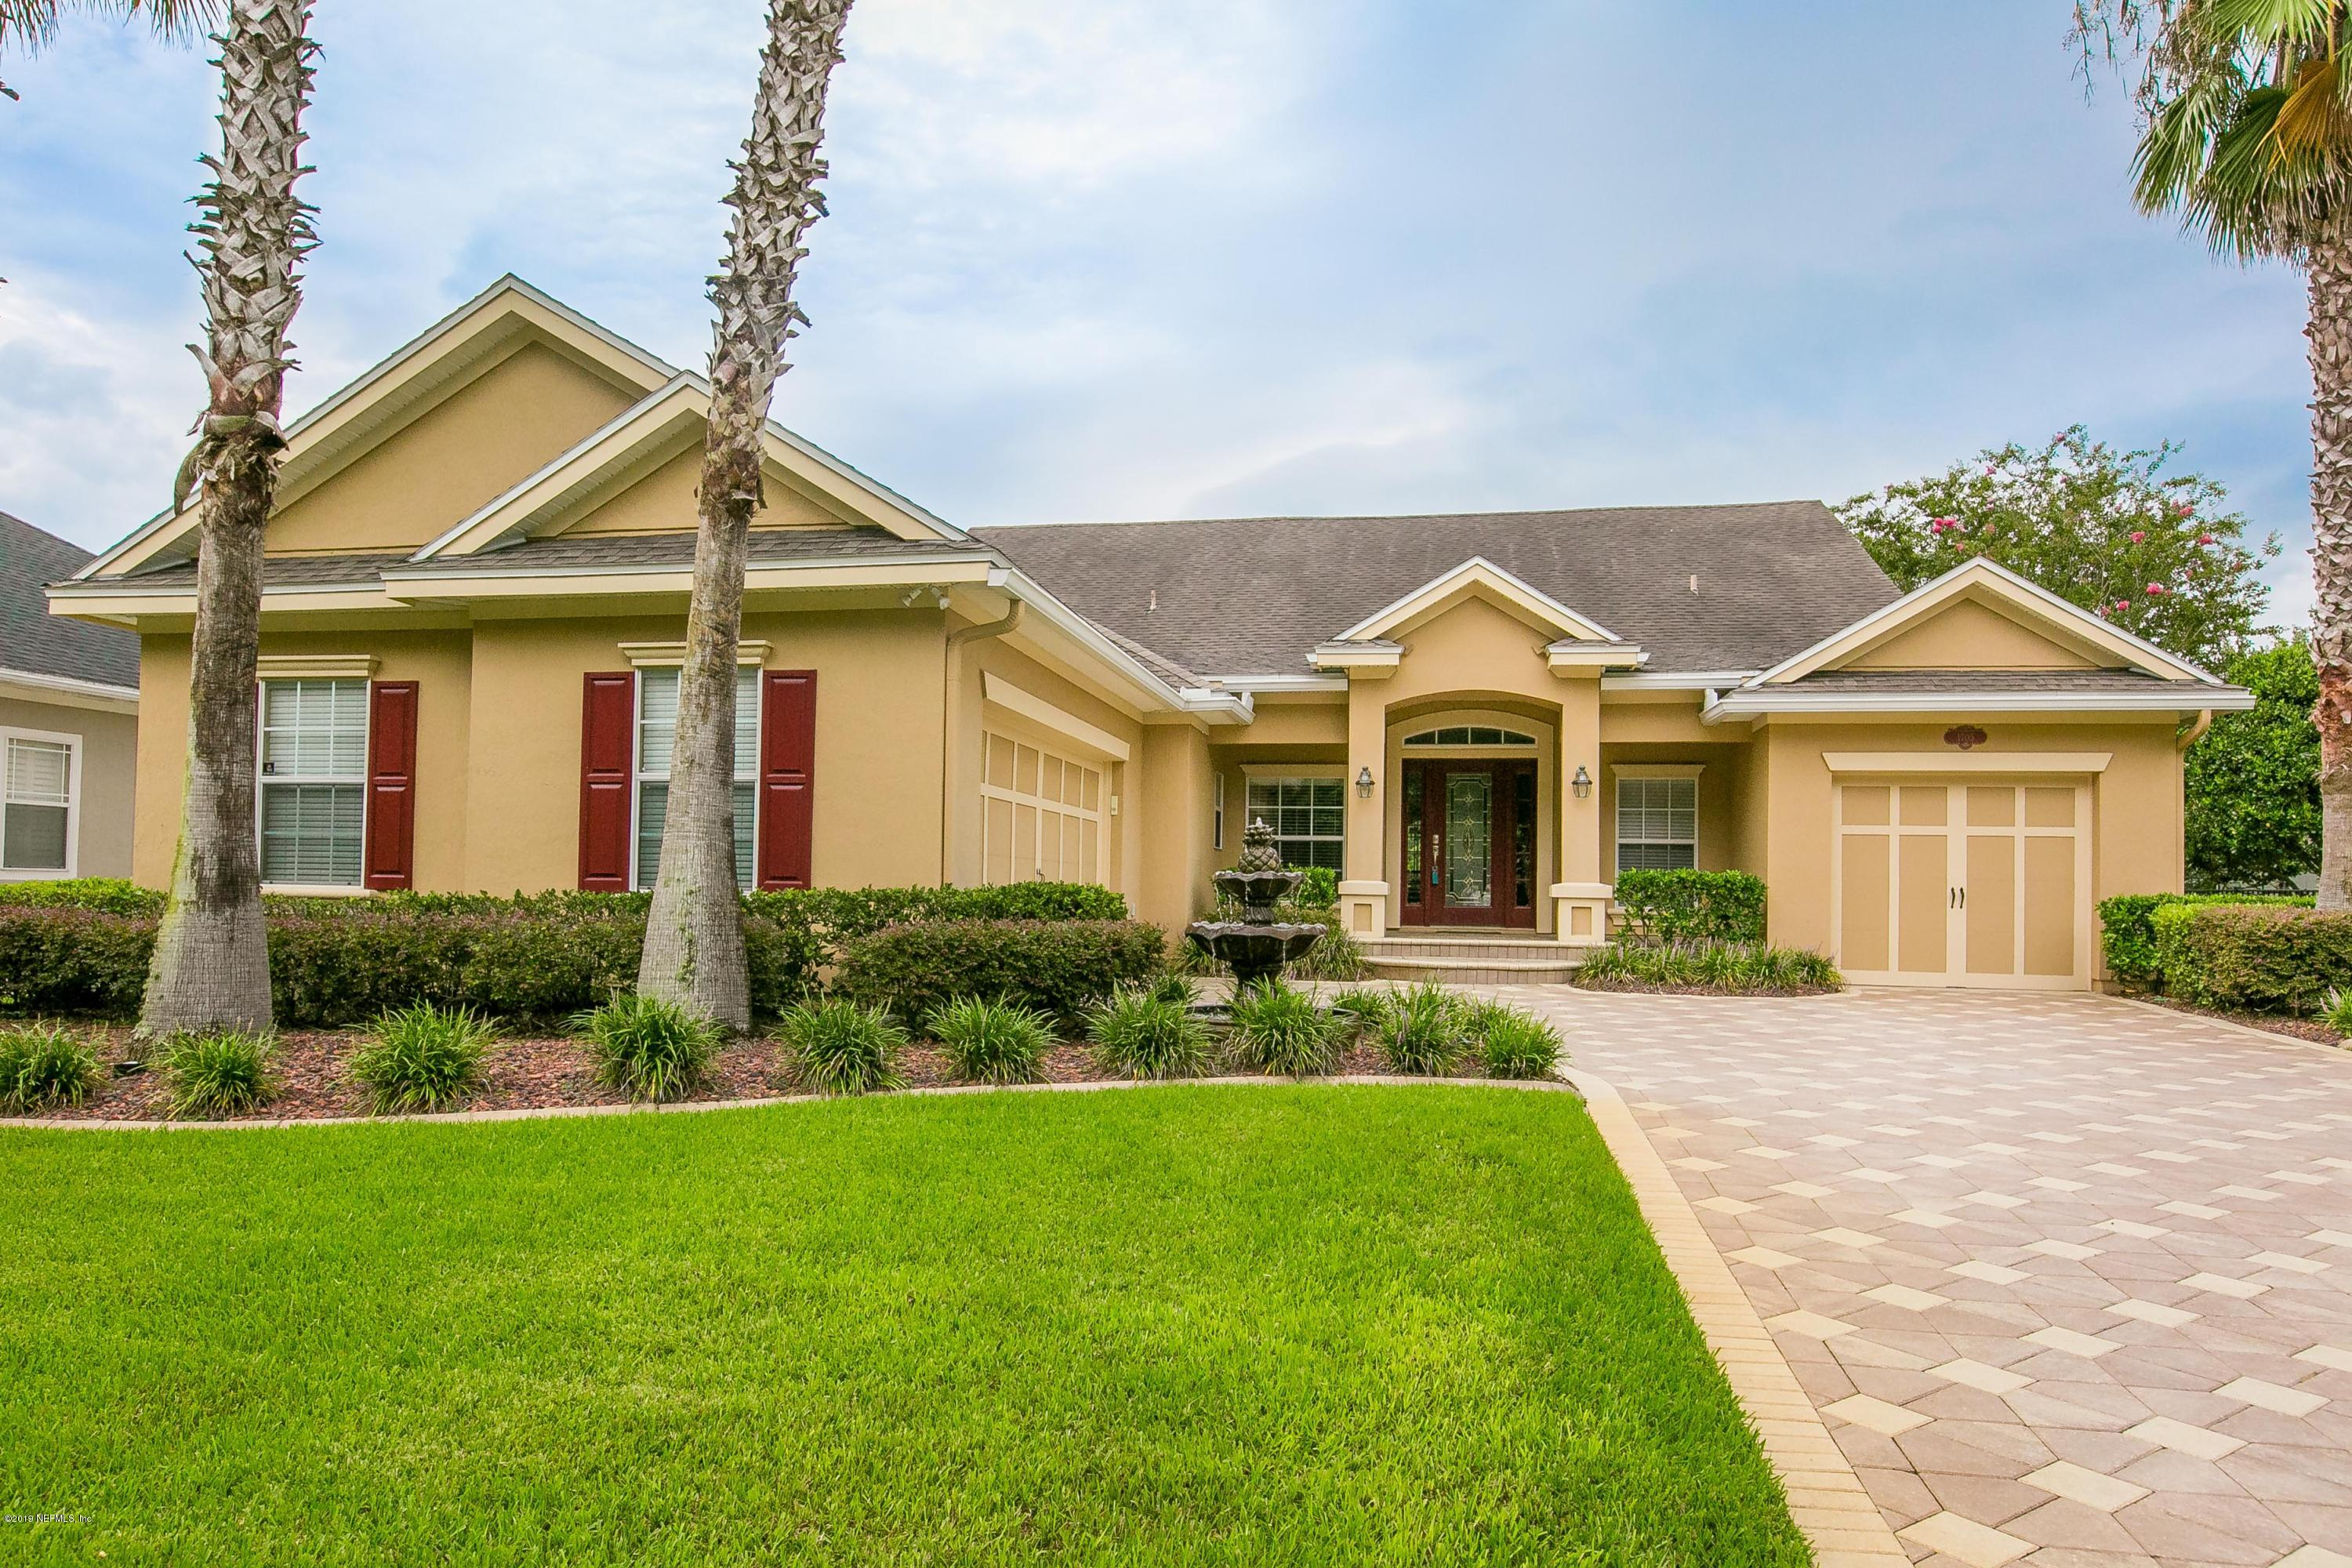 1705 PEPPER STONE, ST AUGUSTINE, FLORIDA 32092, 4 Bedrooms Bedrooms, ,2 BathroomsBathrooms,Residential - single family,For sale,PEPPER STONE,1007696